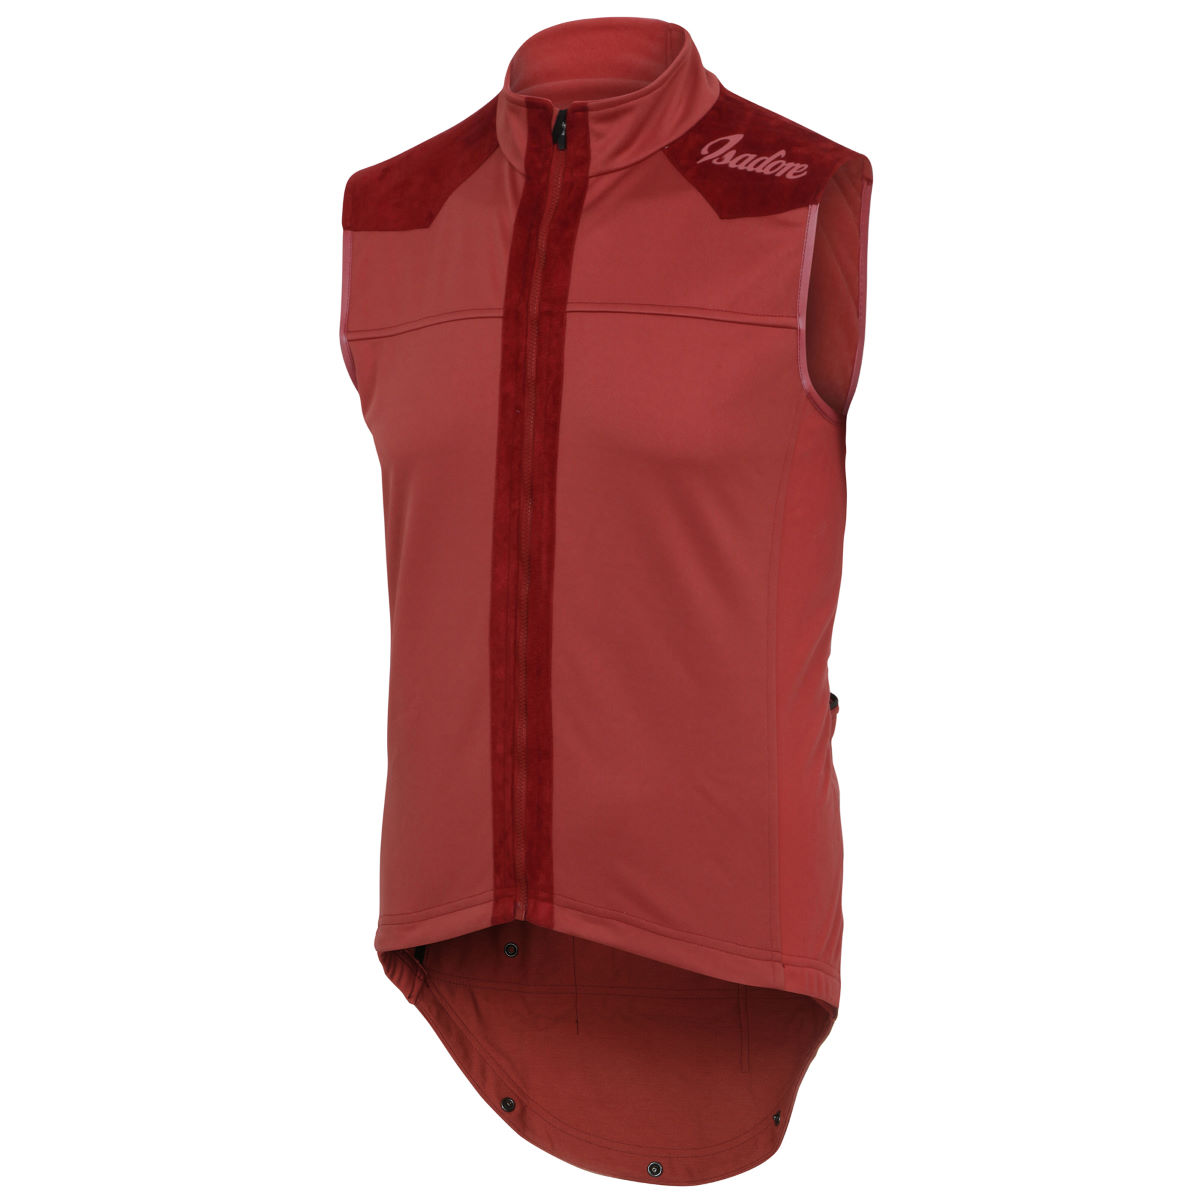 Gilet Isadore Merino Membrane (sans manches) - S Rouge